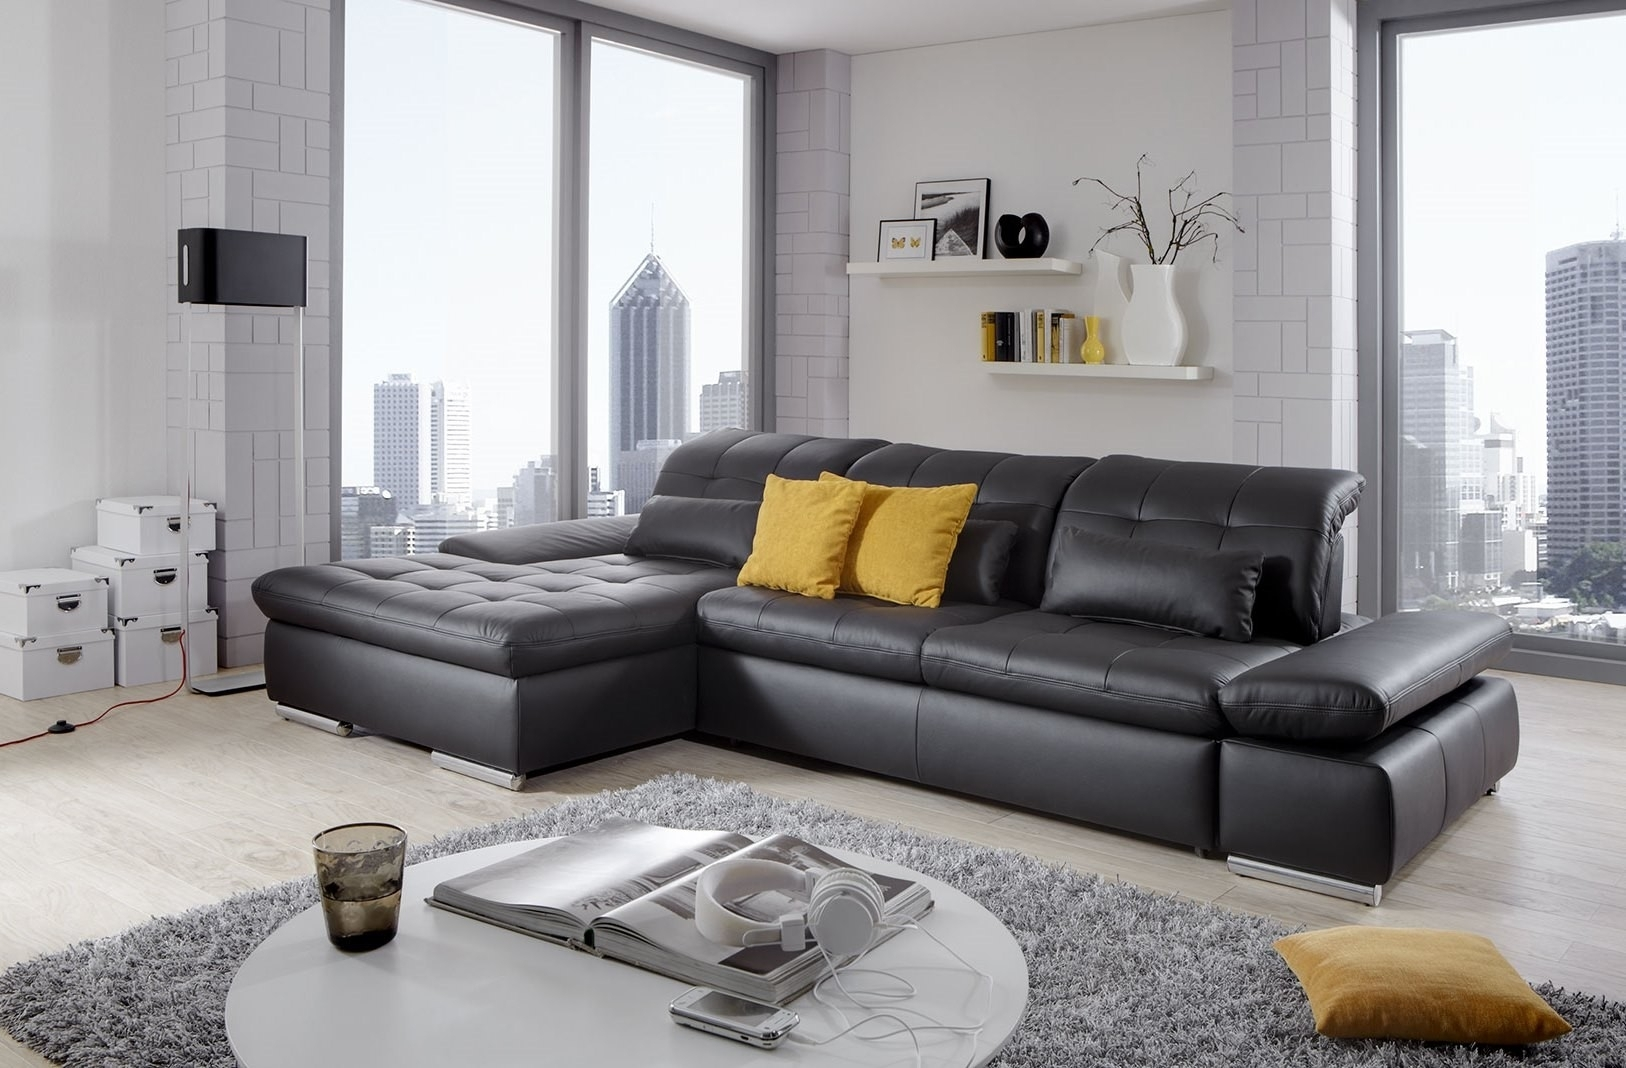 Alpine Sectional Sofa In Black Leather Left Chaise Inside Trinidad And Tobago Sectional Sofas (View 9 of 10)